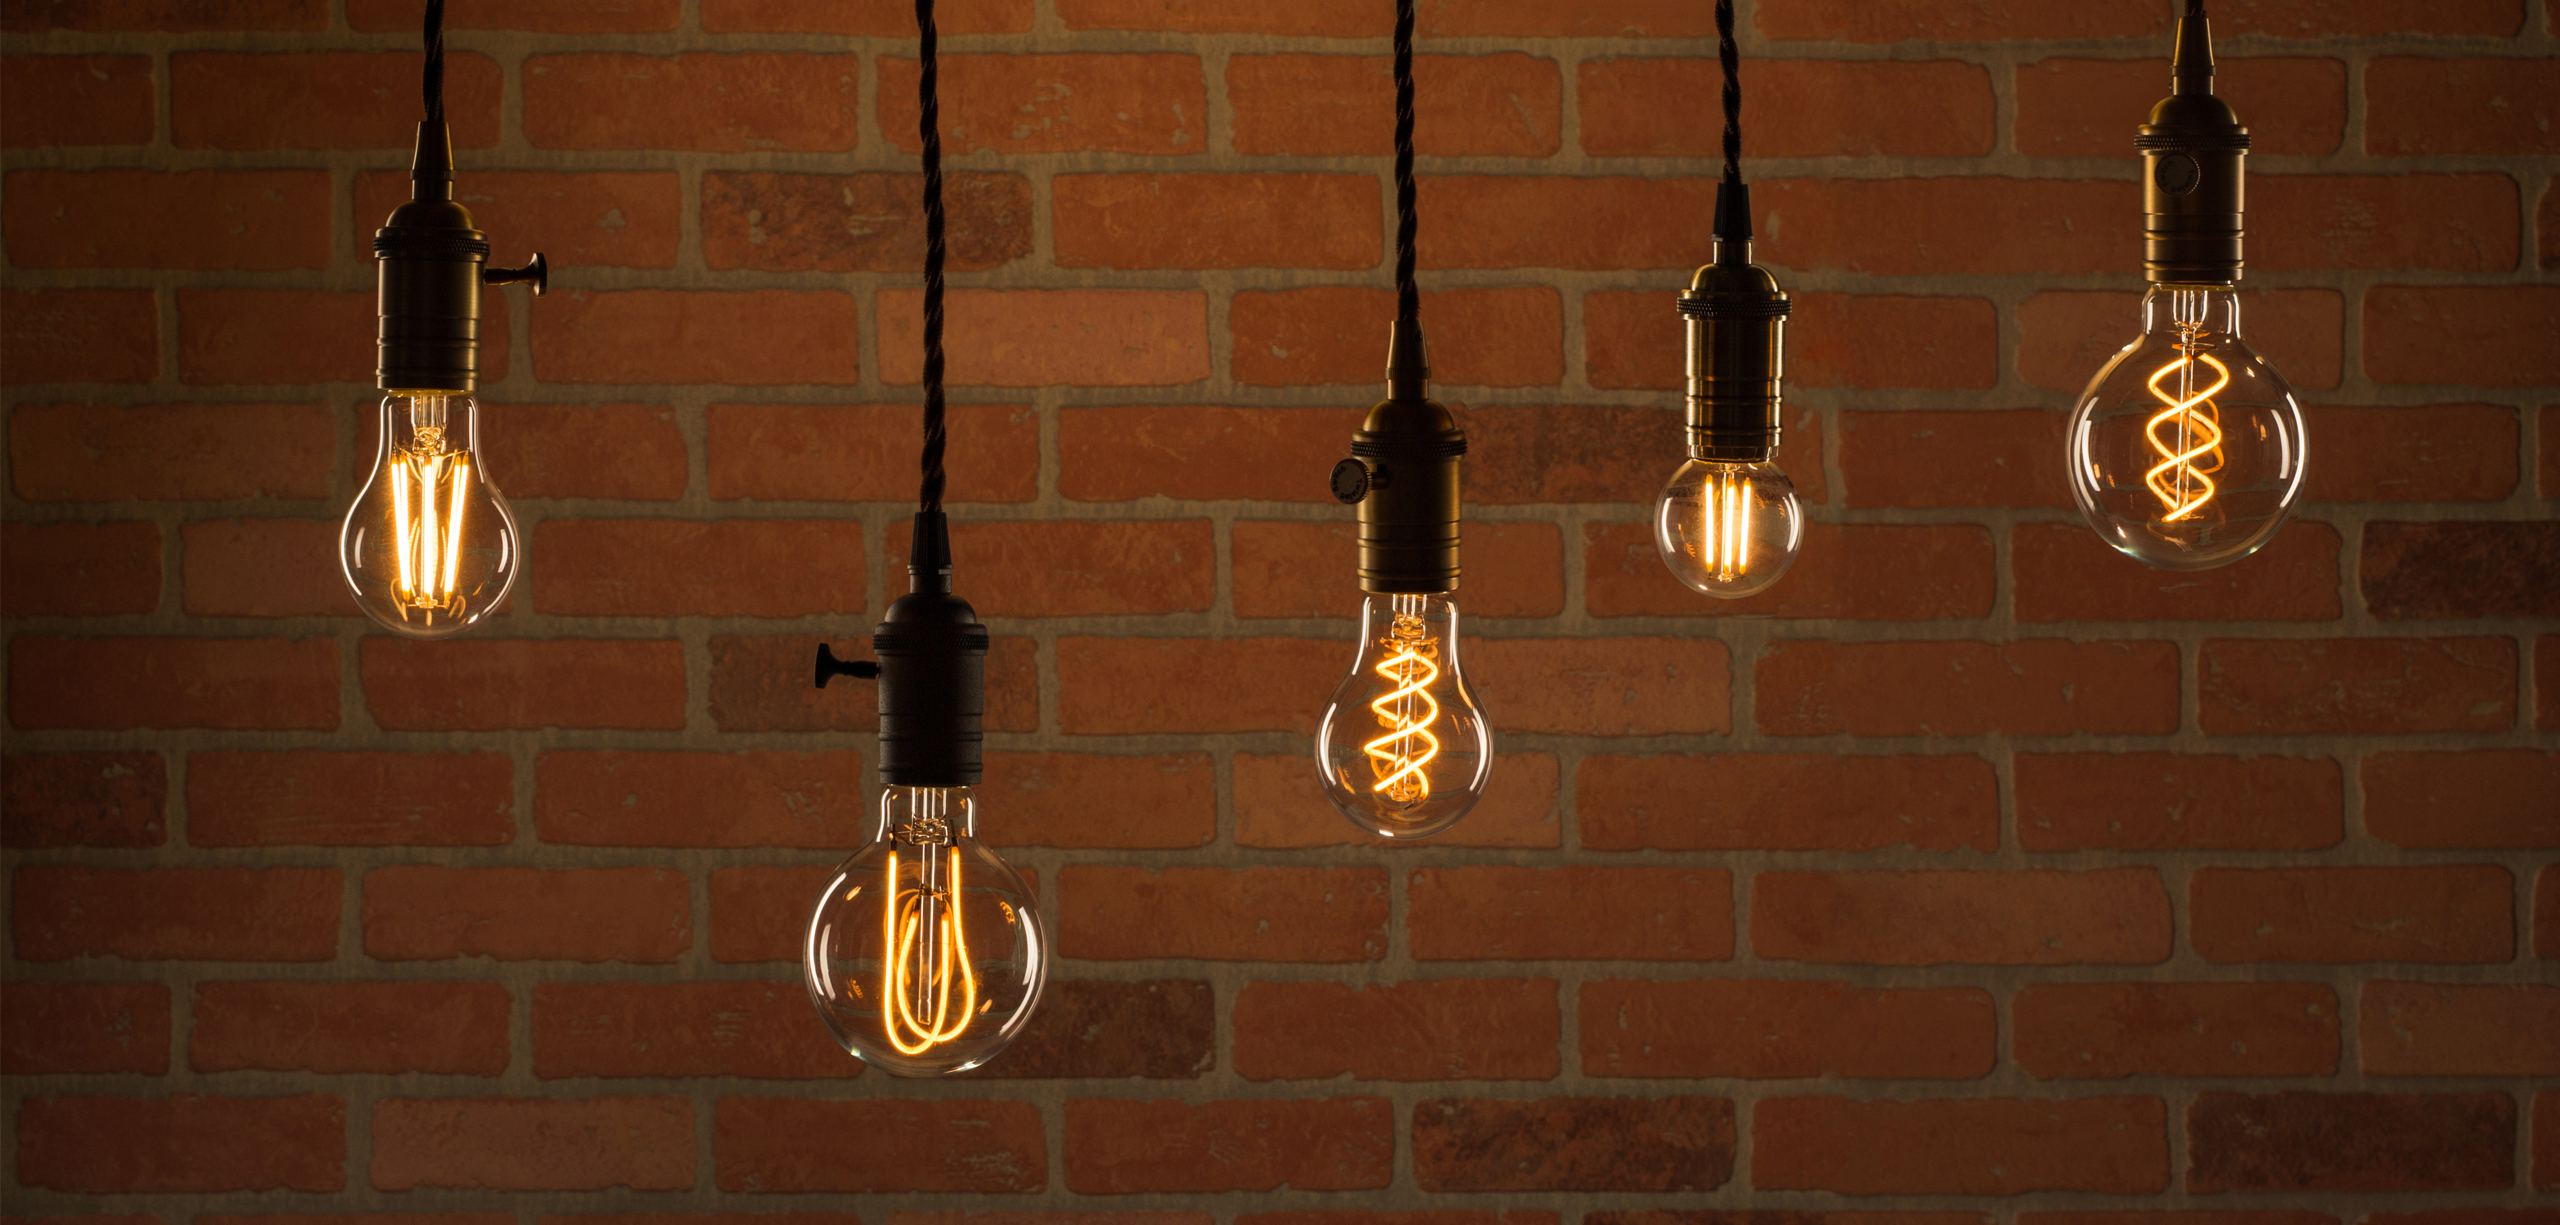 Residential Lighting Fixtures Market